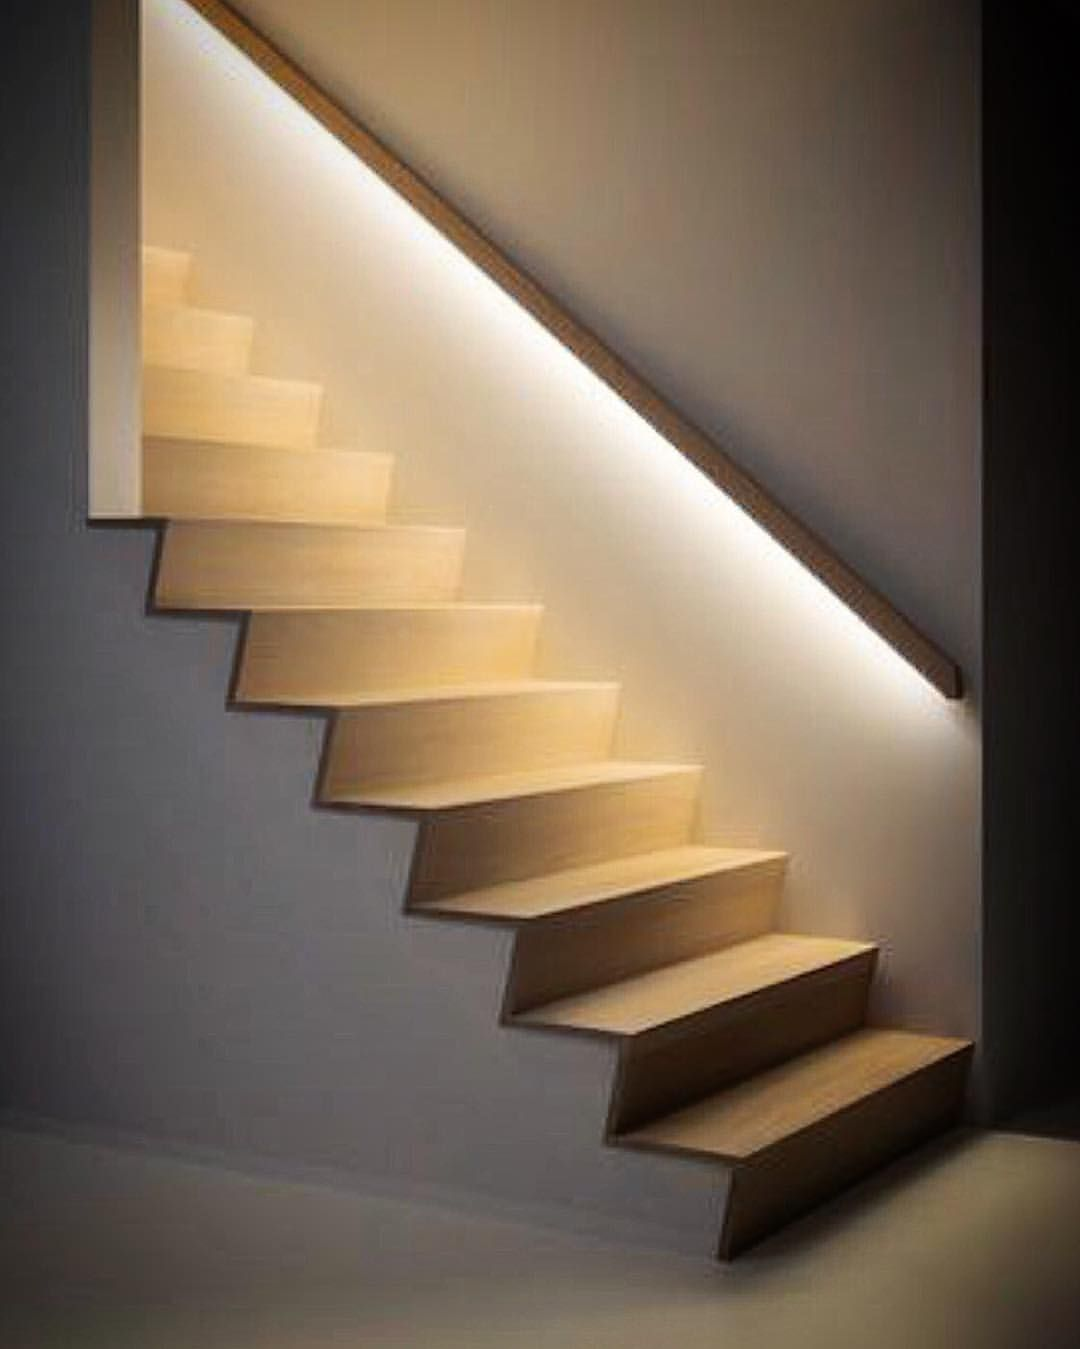 Lighting On Stairs: Portaiden Valaistus